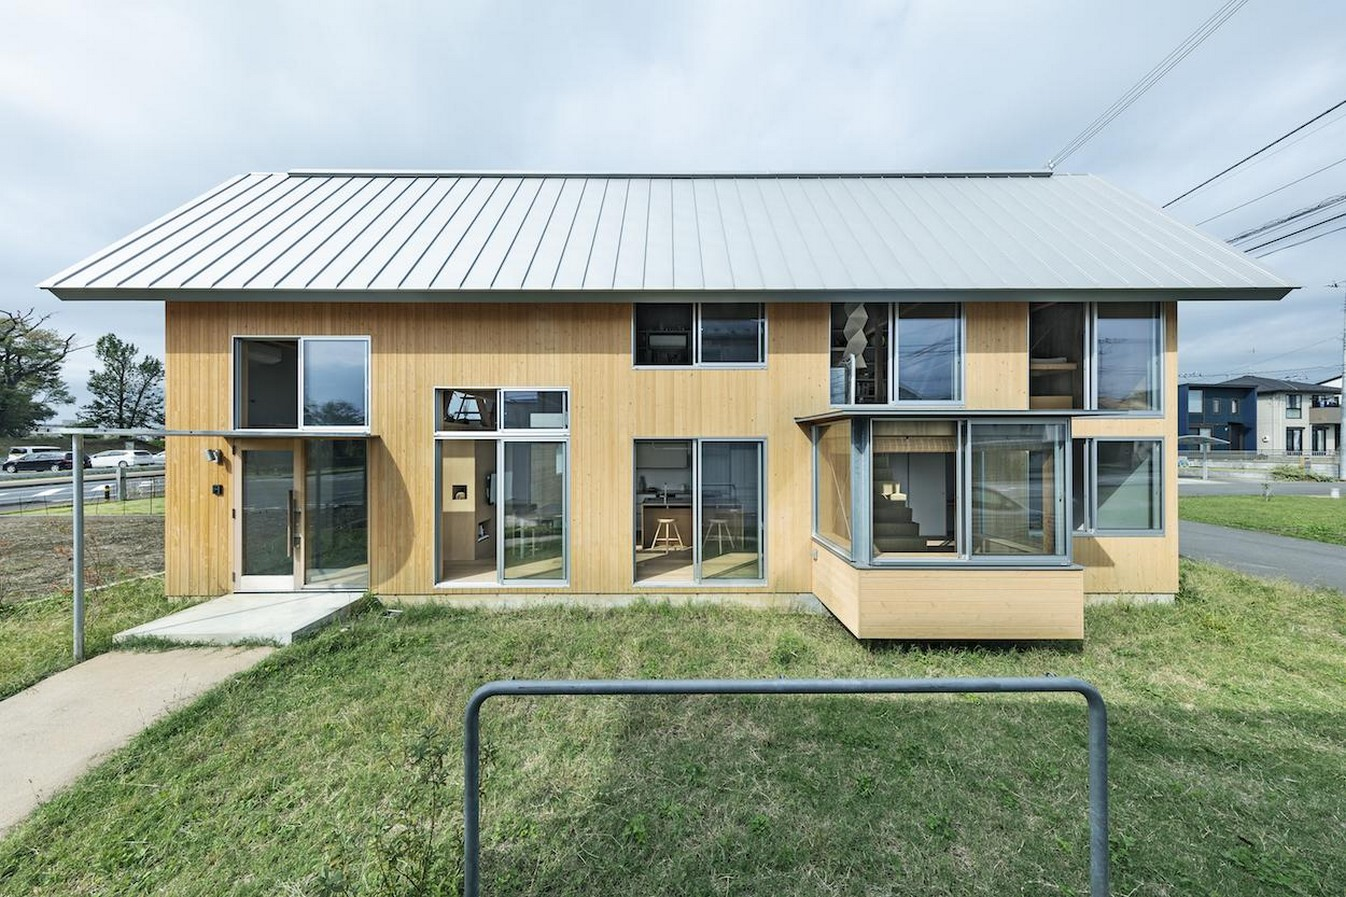 House in field' containing variety of living spaces beneath its gable roof designed by Ship Architecture - Sheet1